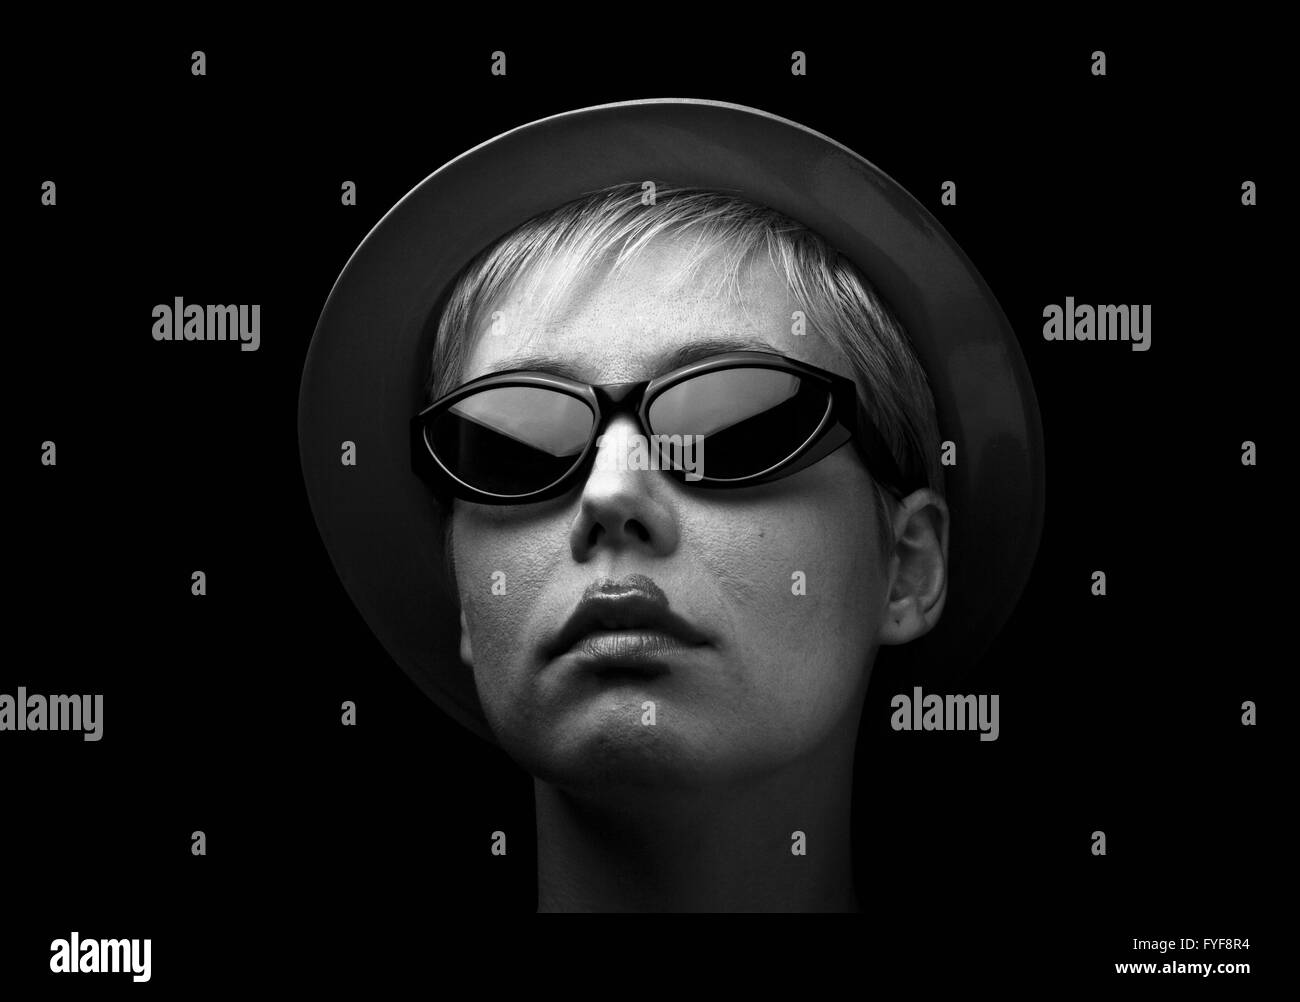 Horizontal portrait of a blonde woman with hat and black glasses on black background - Stock Image